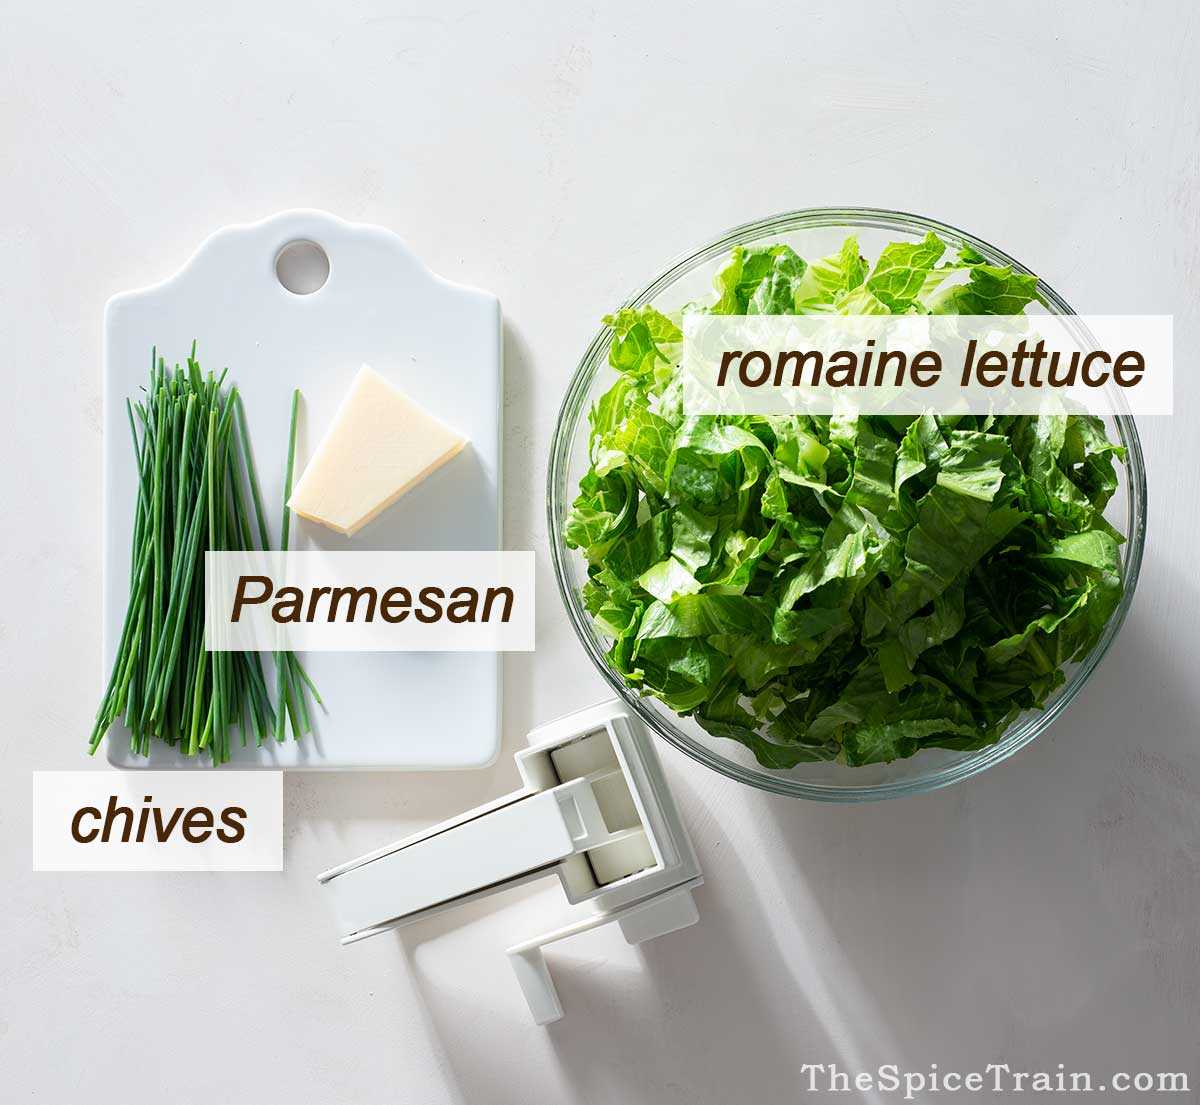 Lettuce, parmesan and chives.